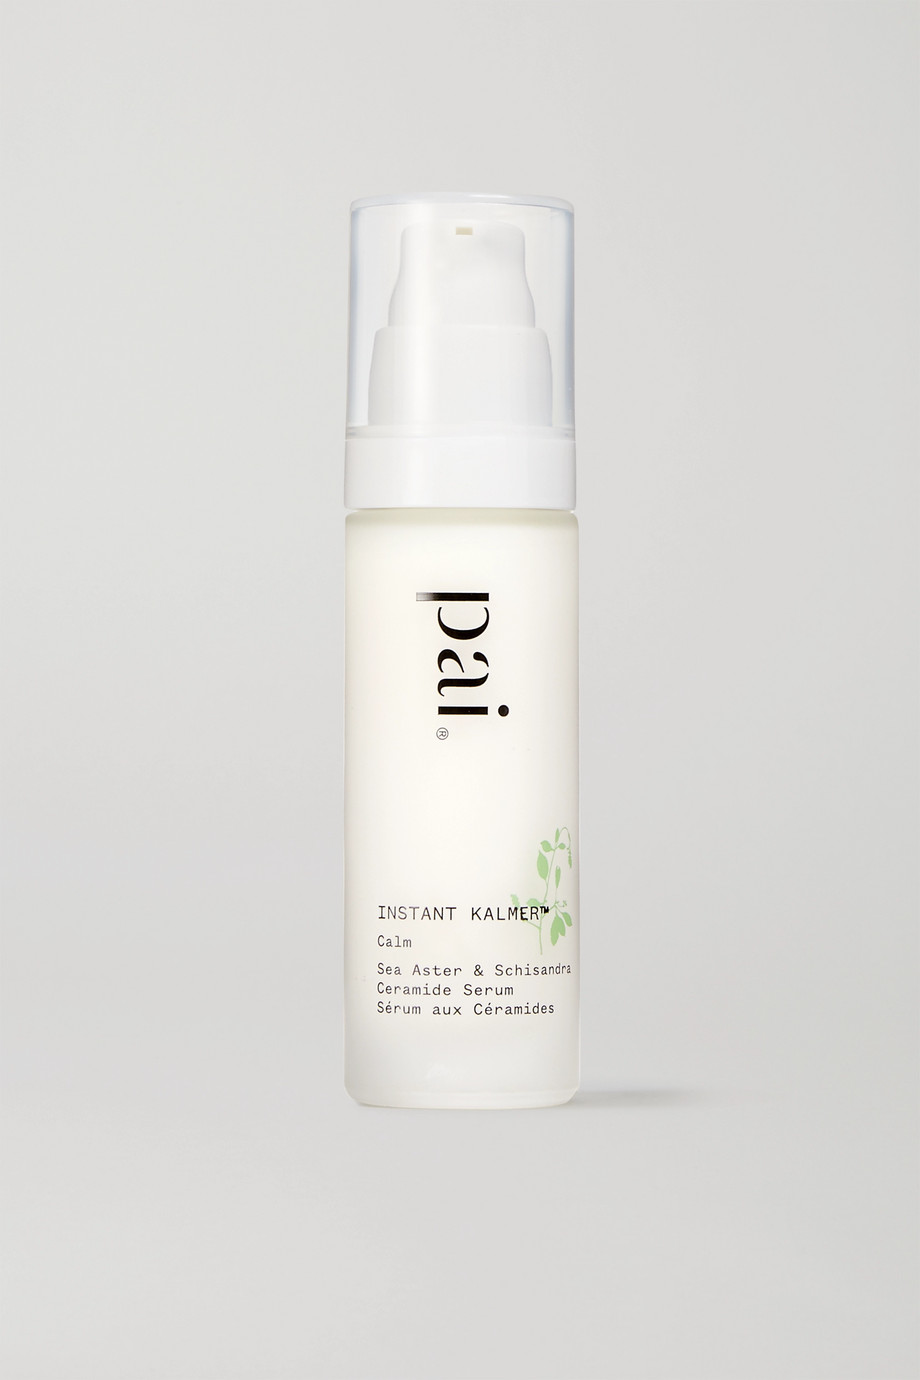 PAI SKINCARE + NET SUSTAIN Sea Aster & Wild Oat Instant Calm Redness Serum, 30ml